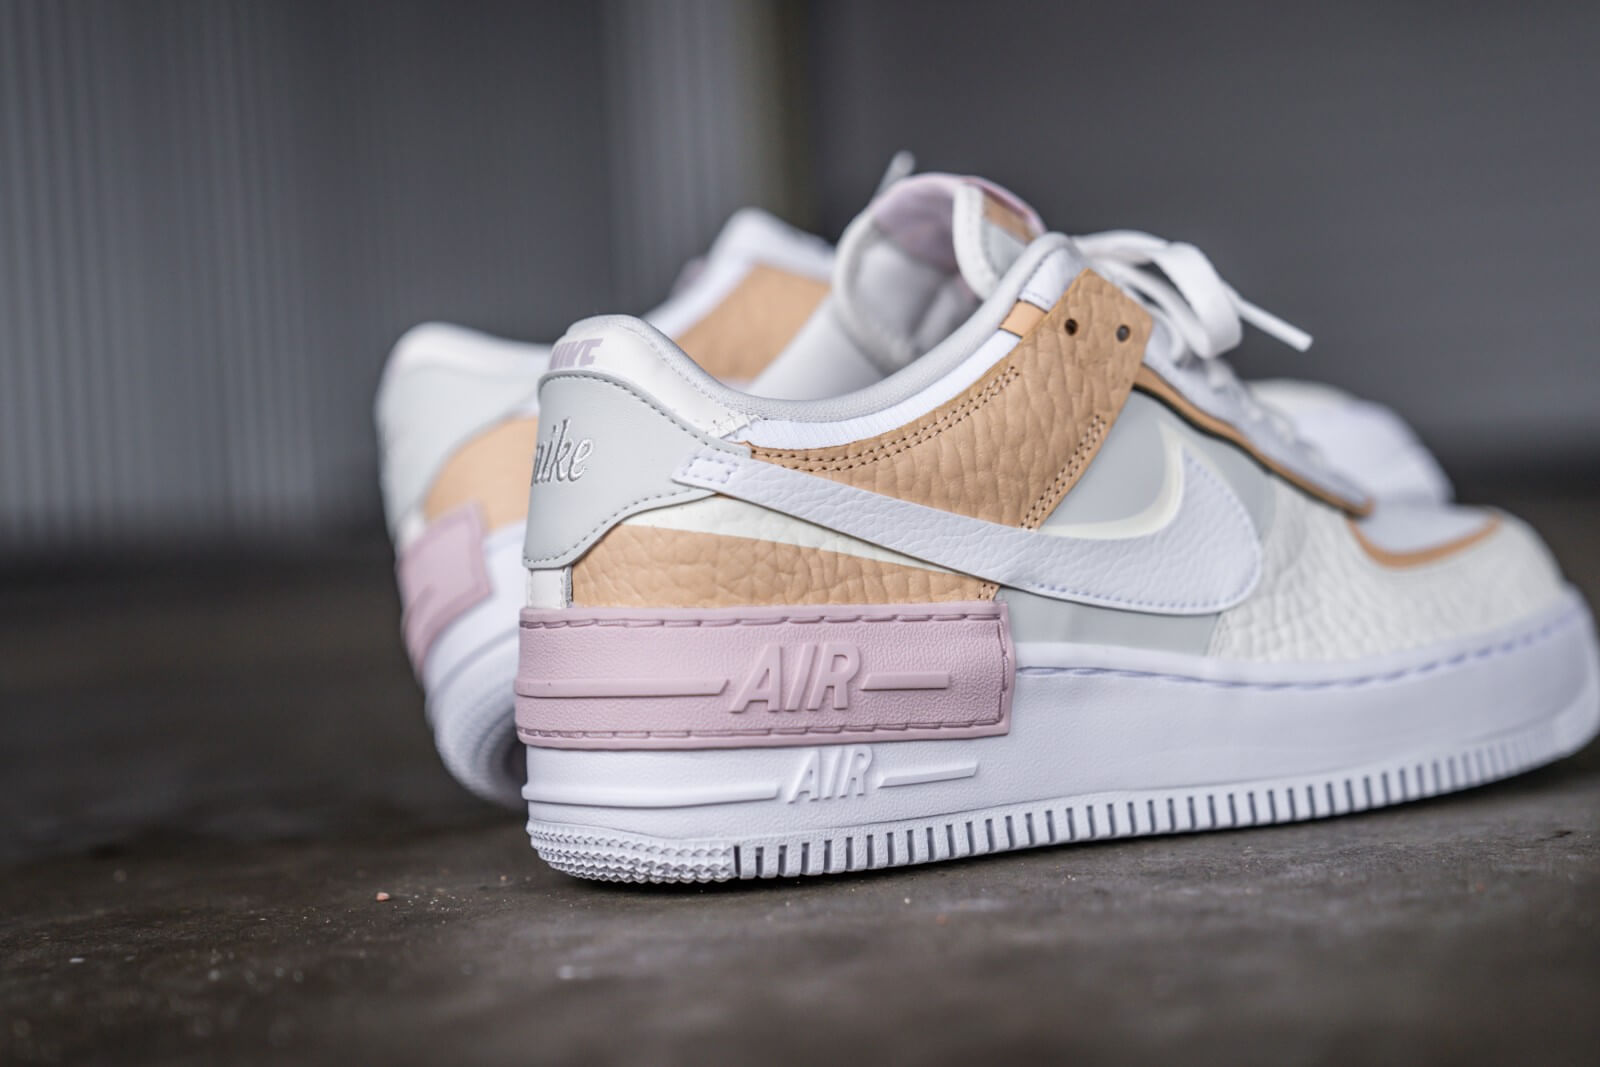 air force 1 shadow blanc rose femme